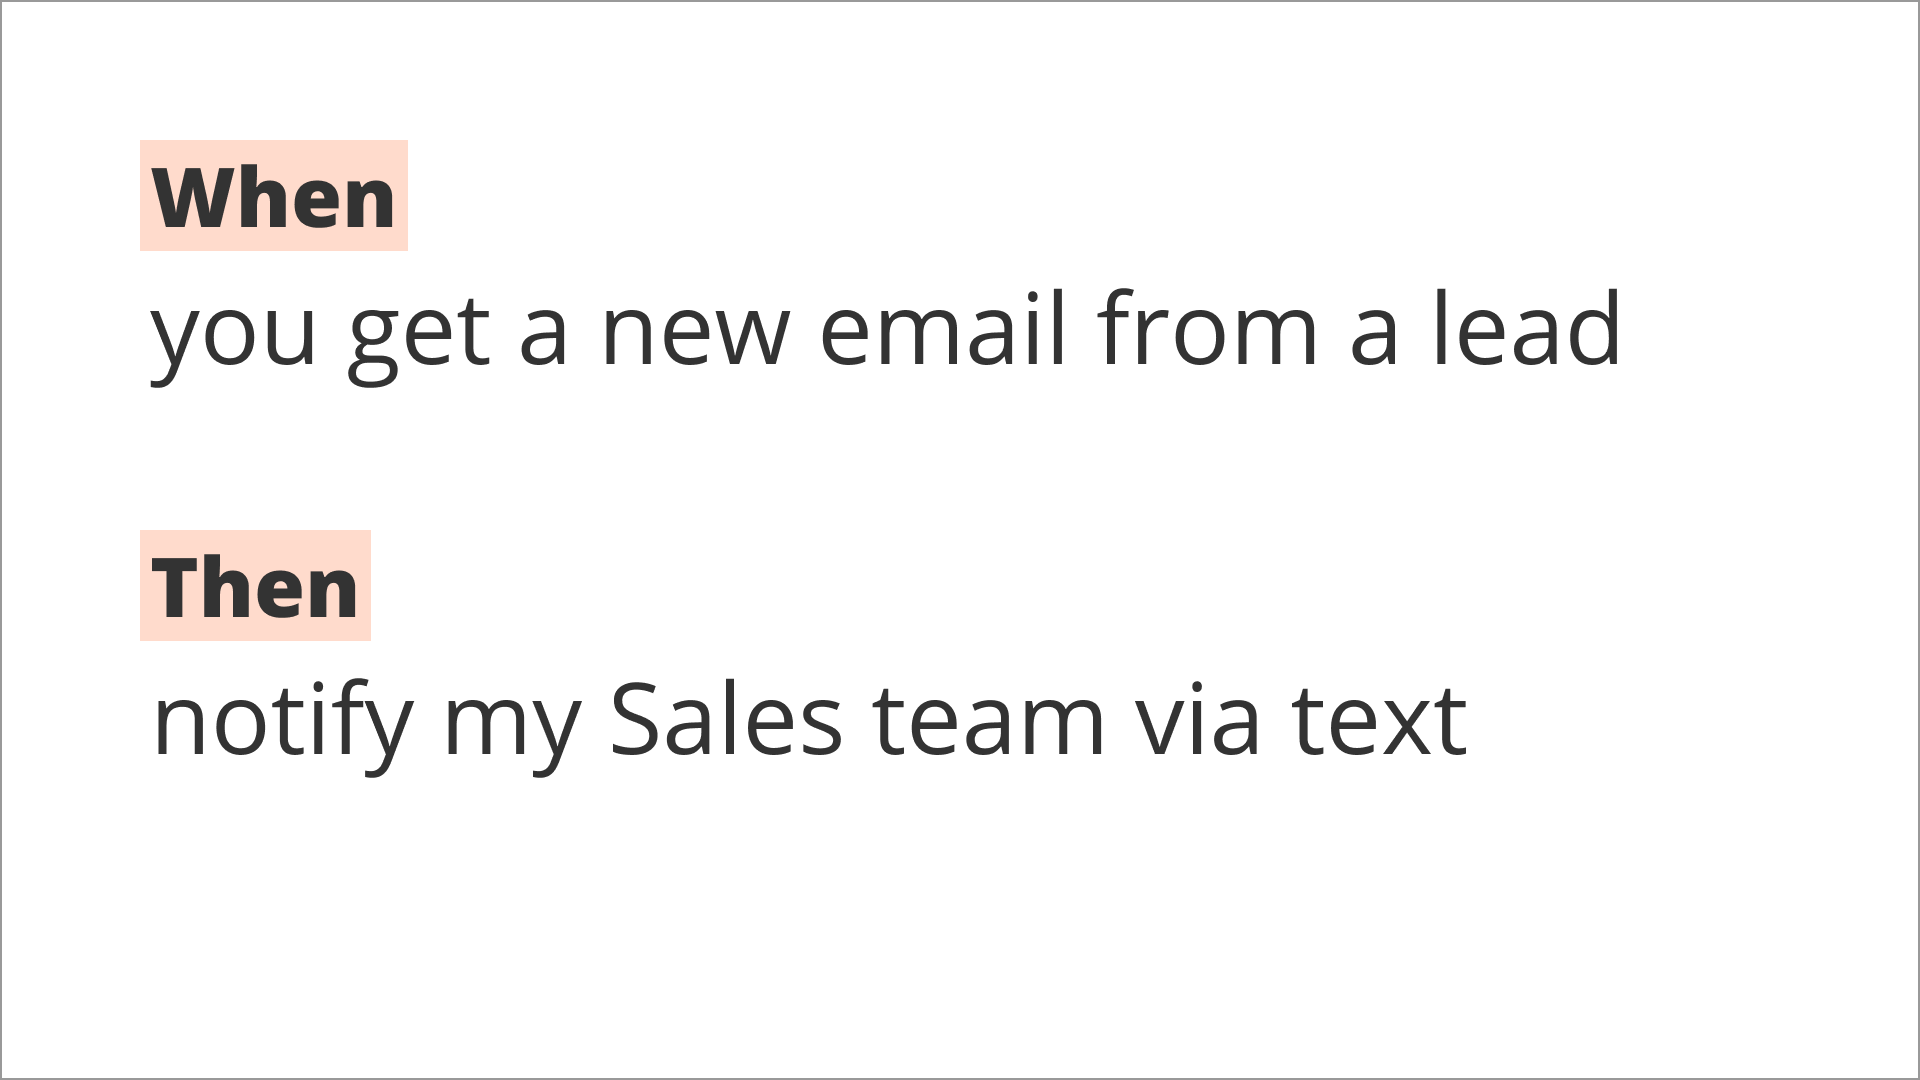 Text saying When you get a new email from a lead then notify my sales team via text